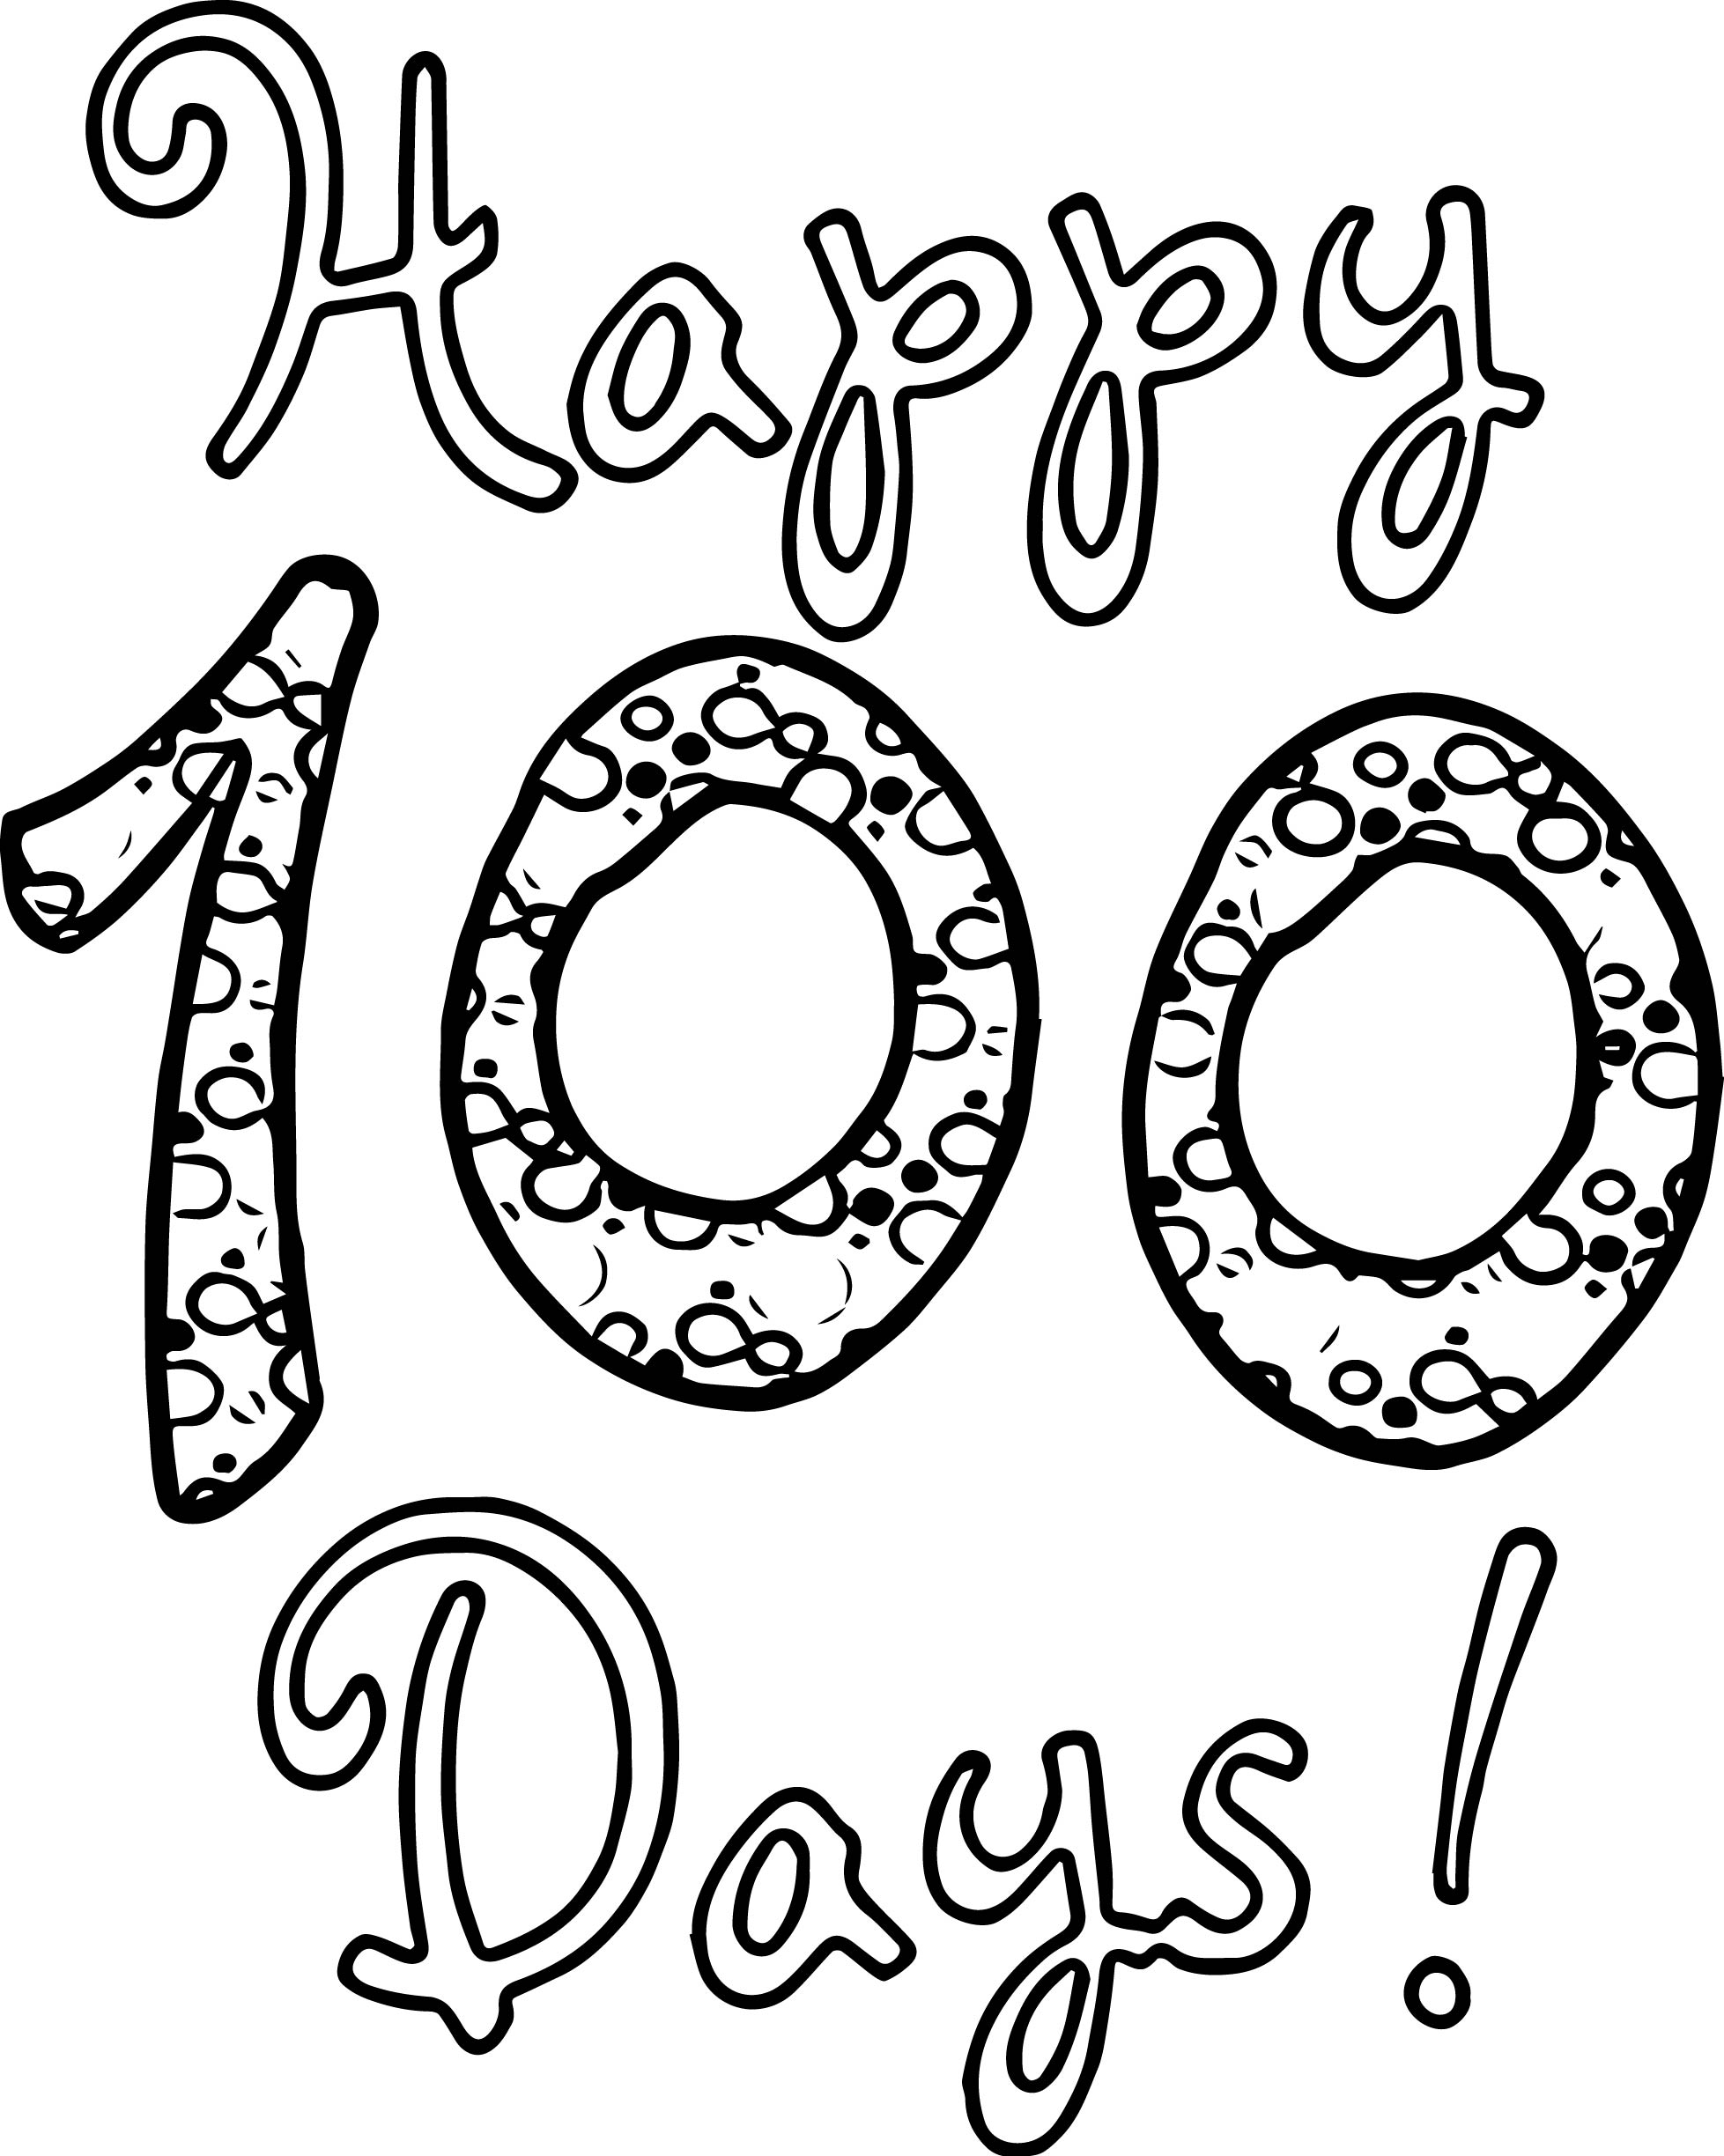 Happy 100 Days Of School Coloring Page | Wecoloringpage